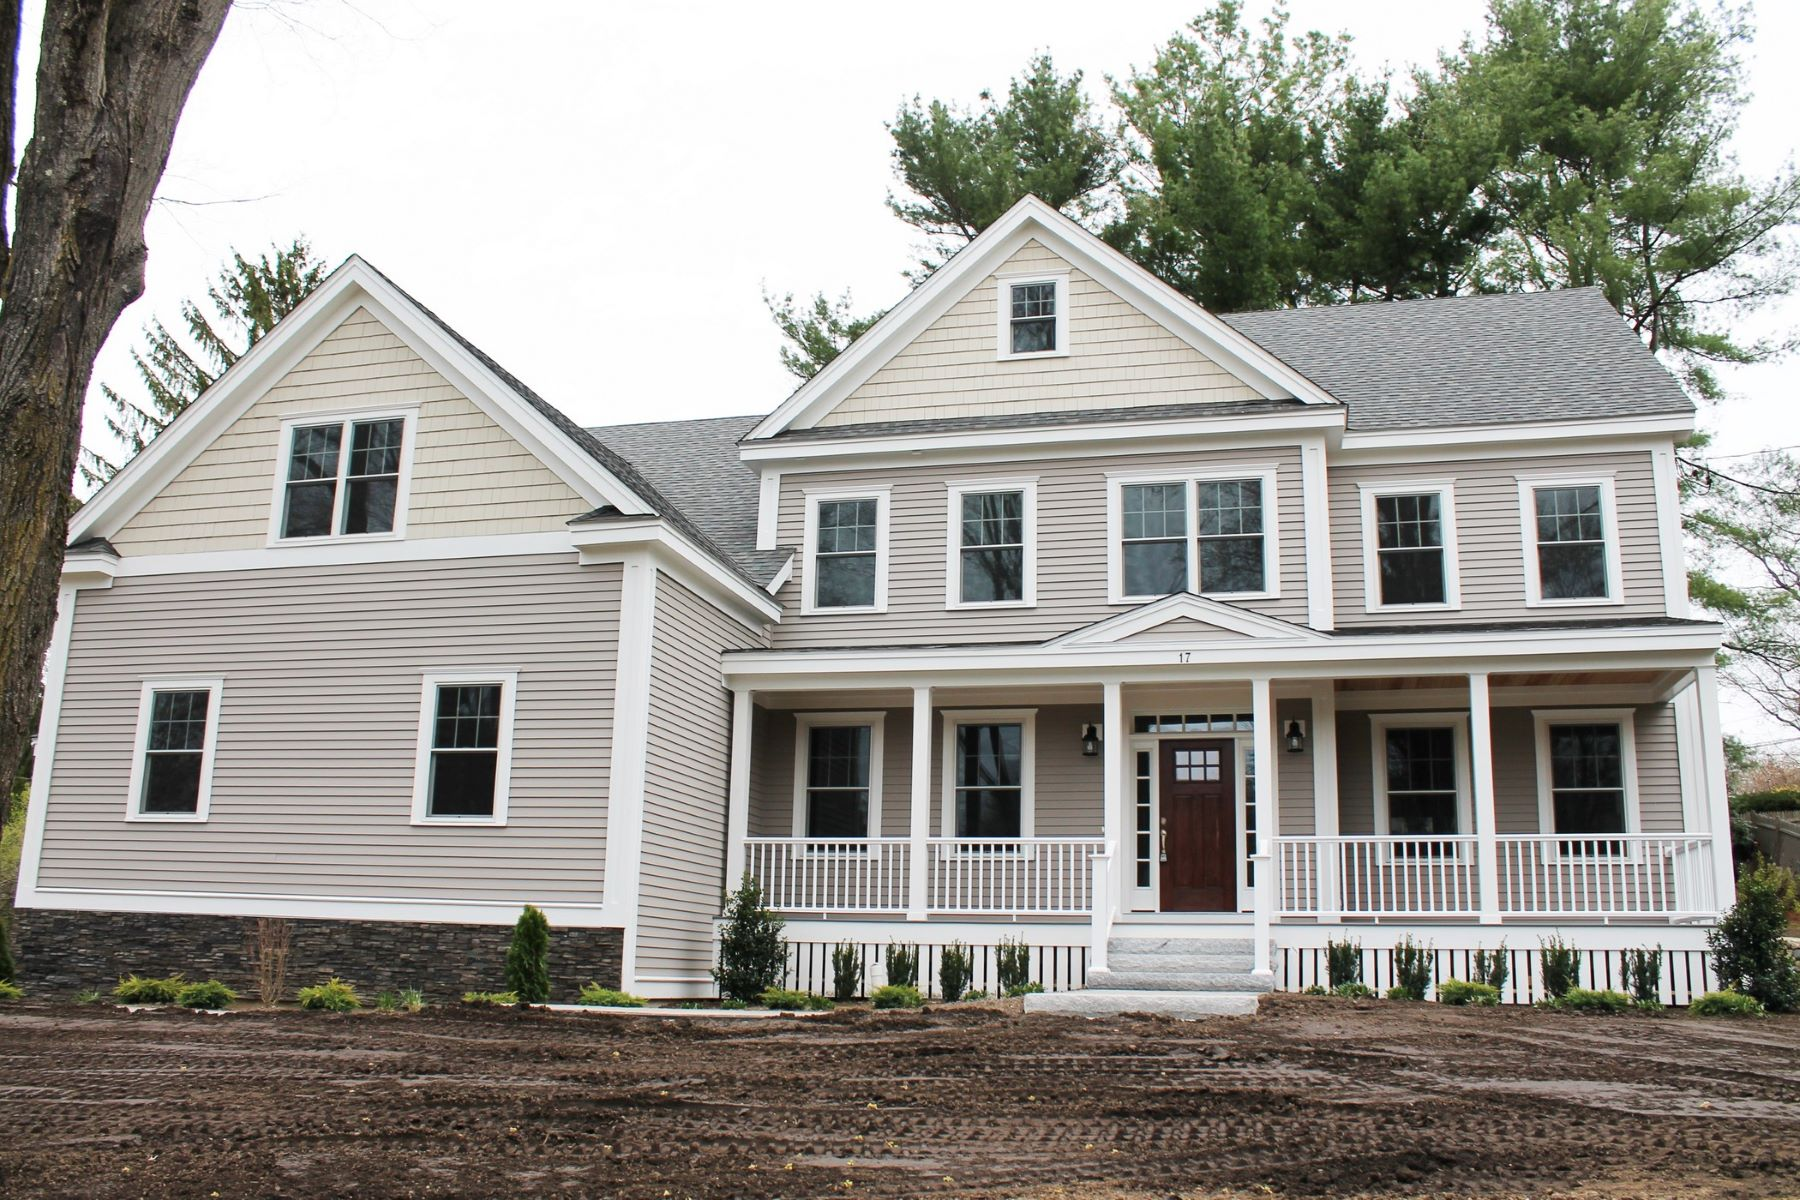 Single Family Home for Active at 17 Minute Man Lane, Lexington 17 Minute Man Ln Lexington, Massachusetts 02421 United States